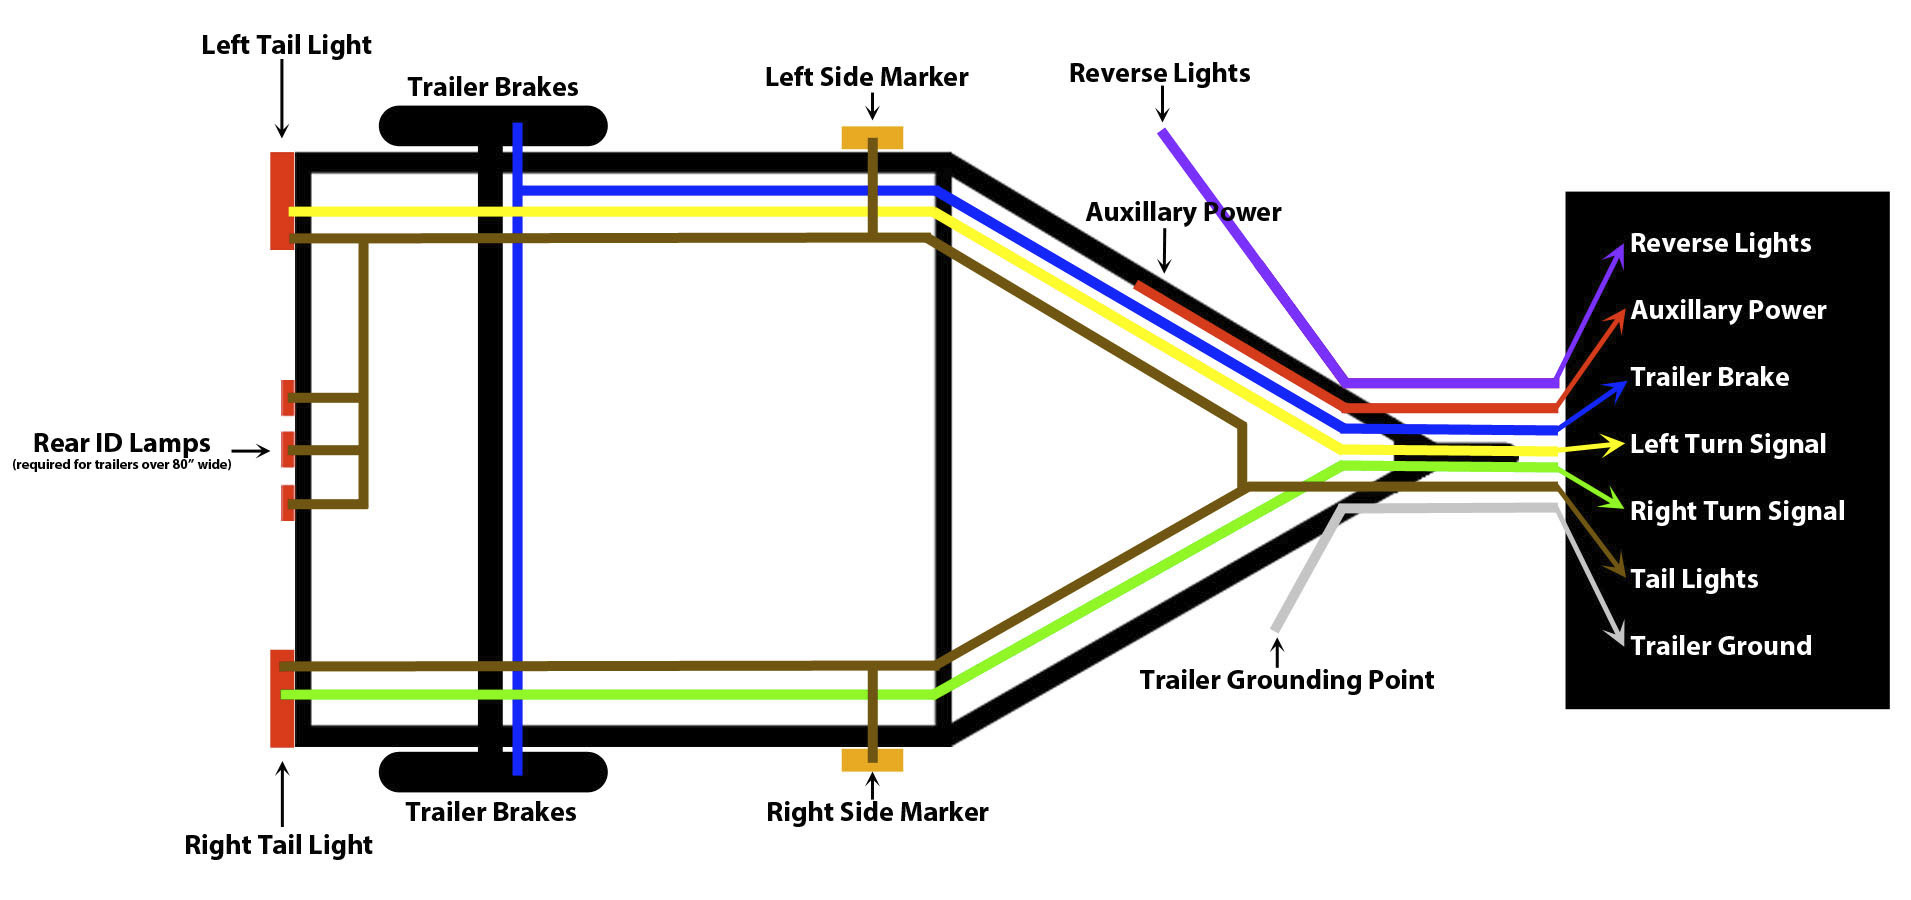 How To Wire Trailer Lights - Trailer Wiring Guide & Videos - Wiring Diagram For Trailer Plug On Truck